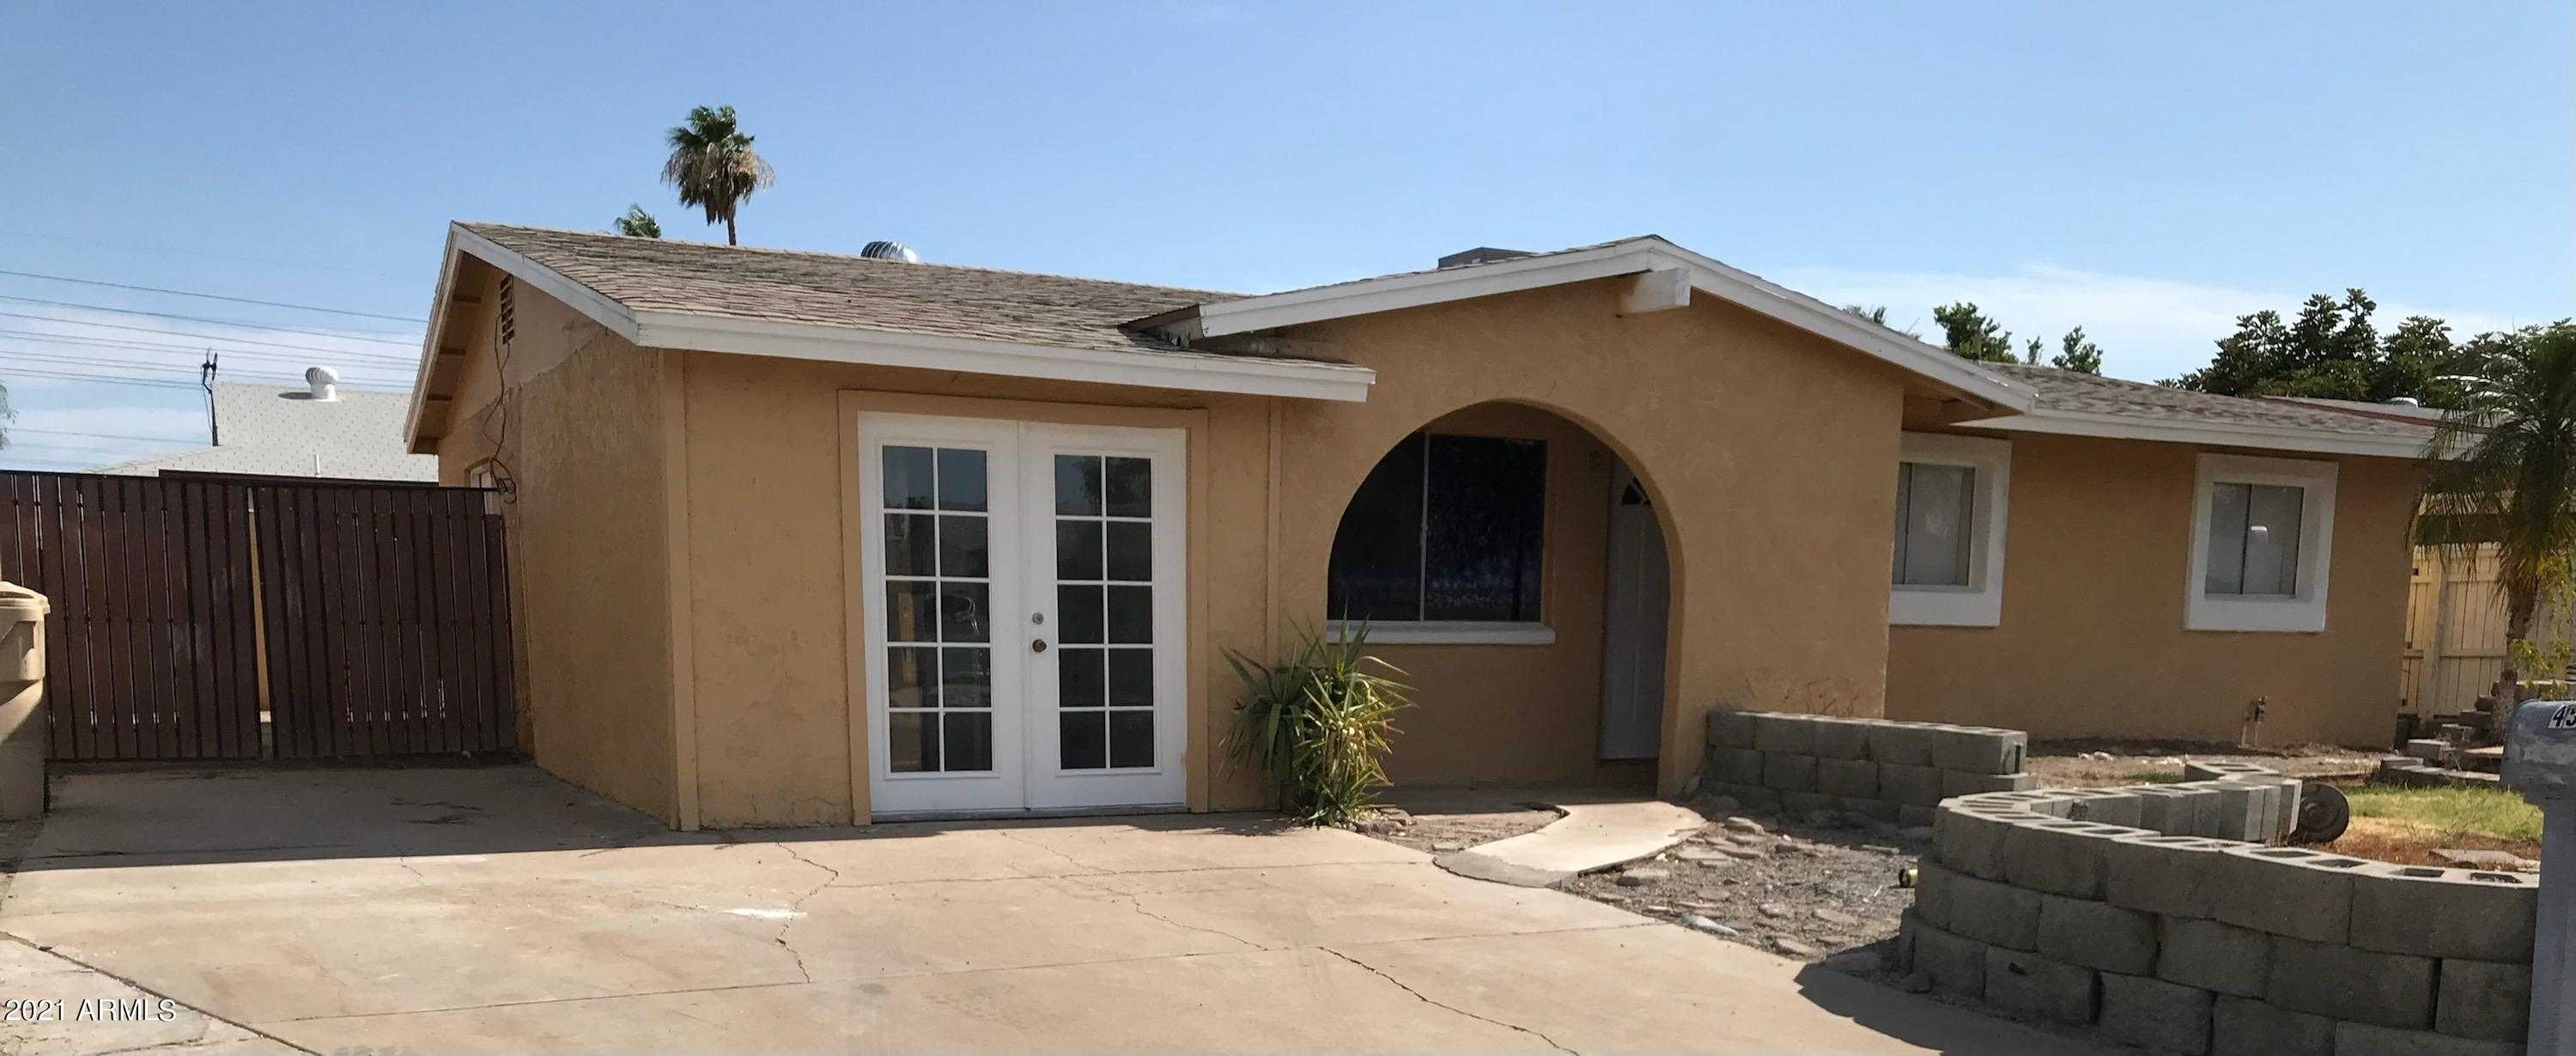 $313,000 - 4Br/2Ba - Home for Sale in Skyview North 1, Glendale